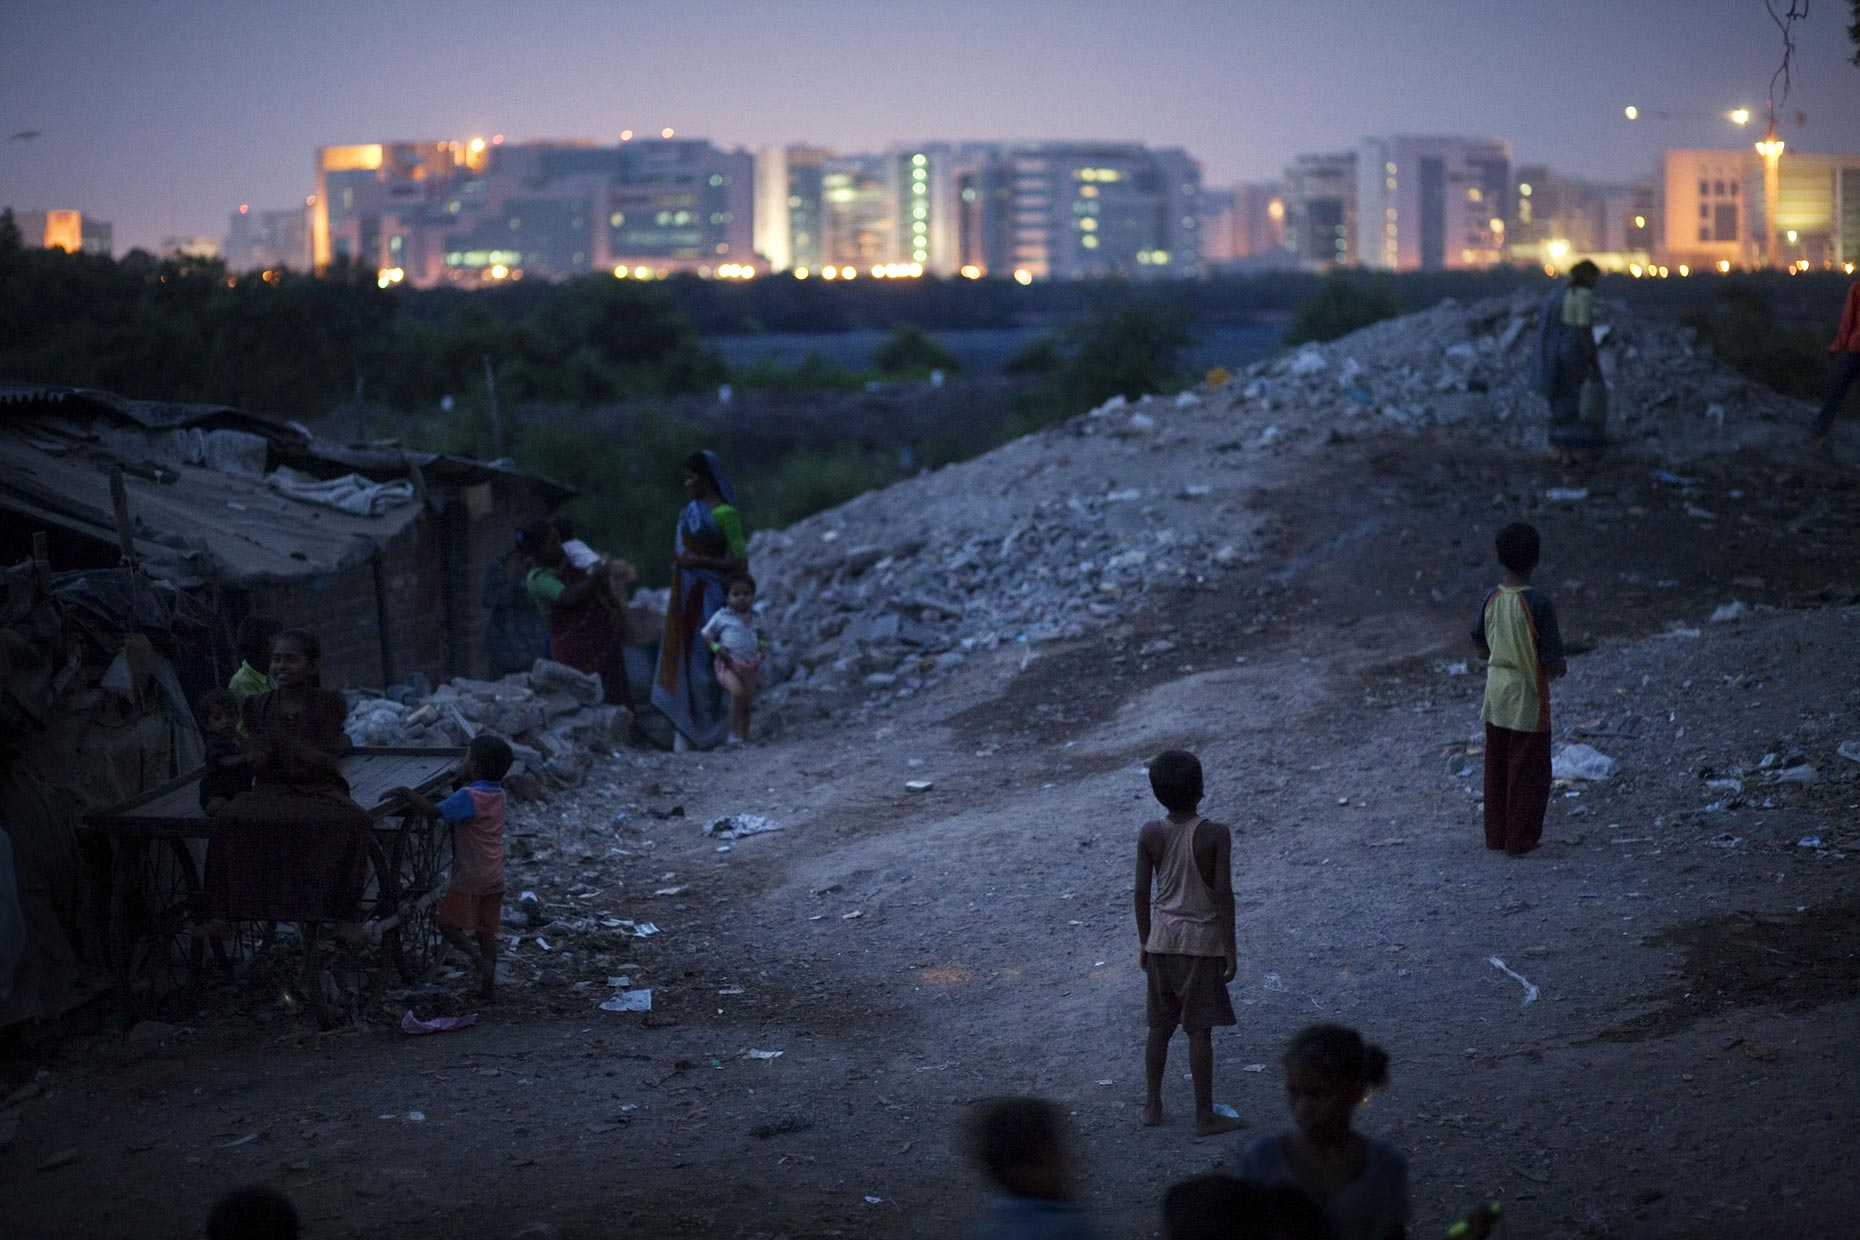 INDIA. Mumbai. 2006. From the edge of New Dharavi, children play by the shanties, with the new Bandra-Kurla Complex shining in the background. The BKC houses multinational companies and upscale offices, and is a high-profile project in Mumbai as the city reaches for a modern identity. Dharavi has become such a contentious issue in Mumbai politics partially because it is one of the few areas bordering the new complex. In between BKC and Dharavi is a mangrove swap and the Mithi River. Dharavi is one of Mumbai's biggest and longest standing slums. Home to somewhere between 600 000 and one million people, it is a beehive of recycling and manufacturing industries. However, Dharavi sits on prime real estate right in the heart of the booming megapolis, and is in close vicinity to the new Bandra-Kurla Complex, a new financial hub. Dharavi is now scheduled for redevelopment, meaning everything in the slum, for good and bad, is set to be demolished.